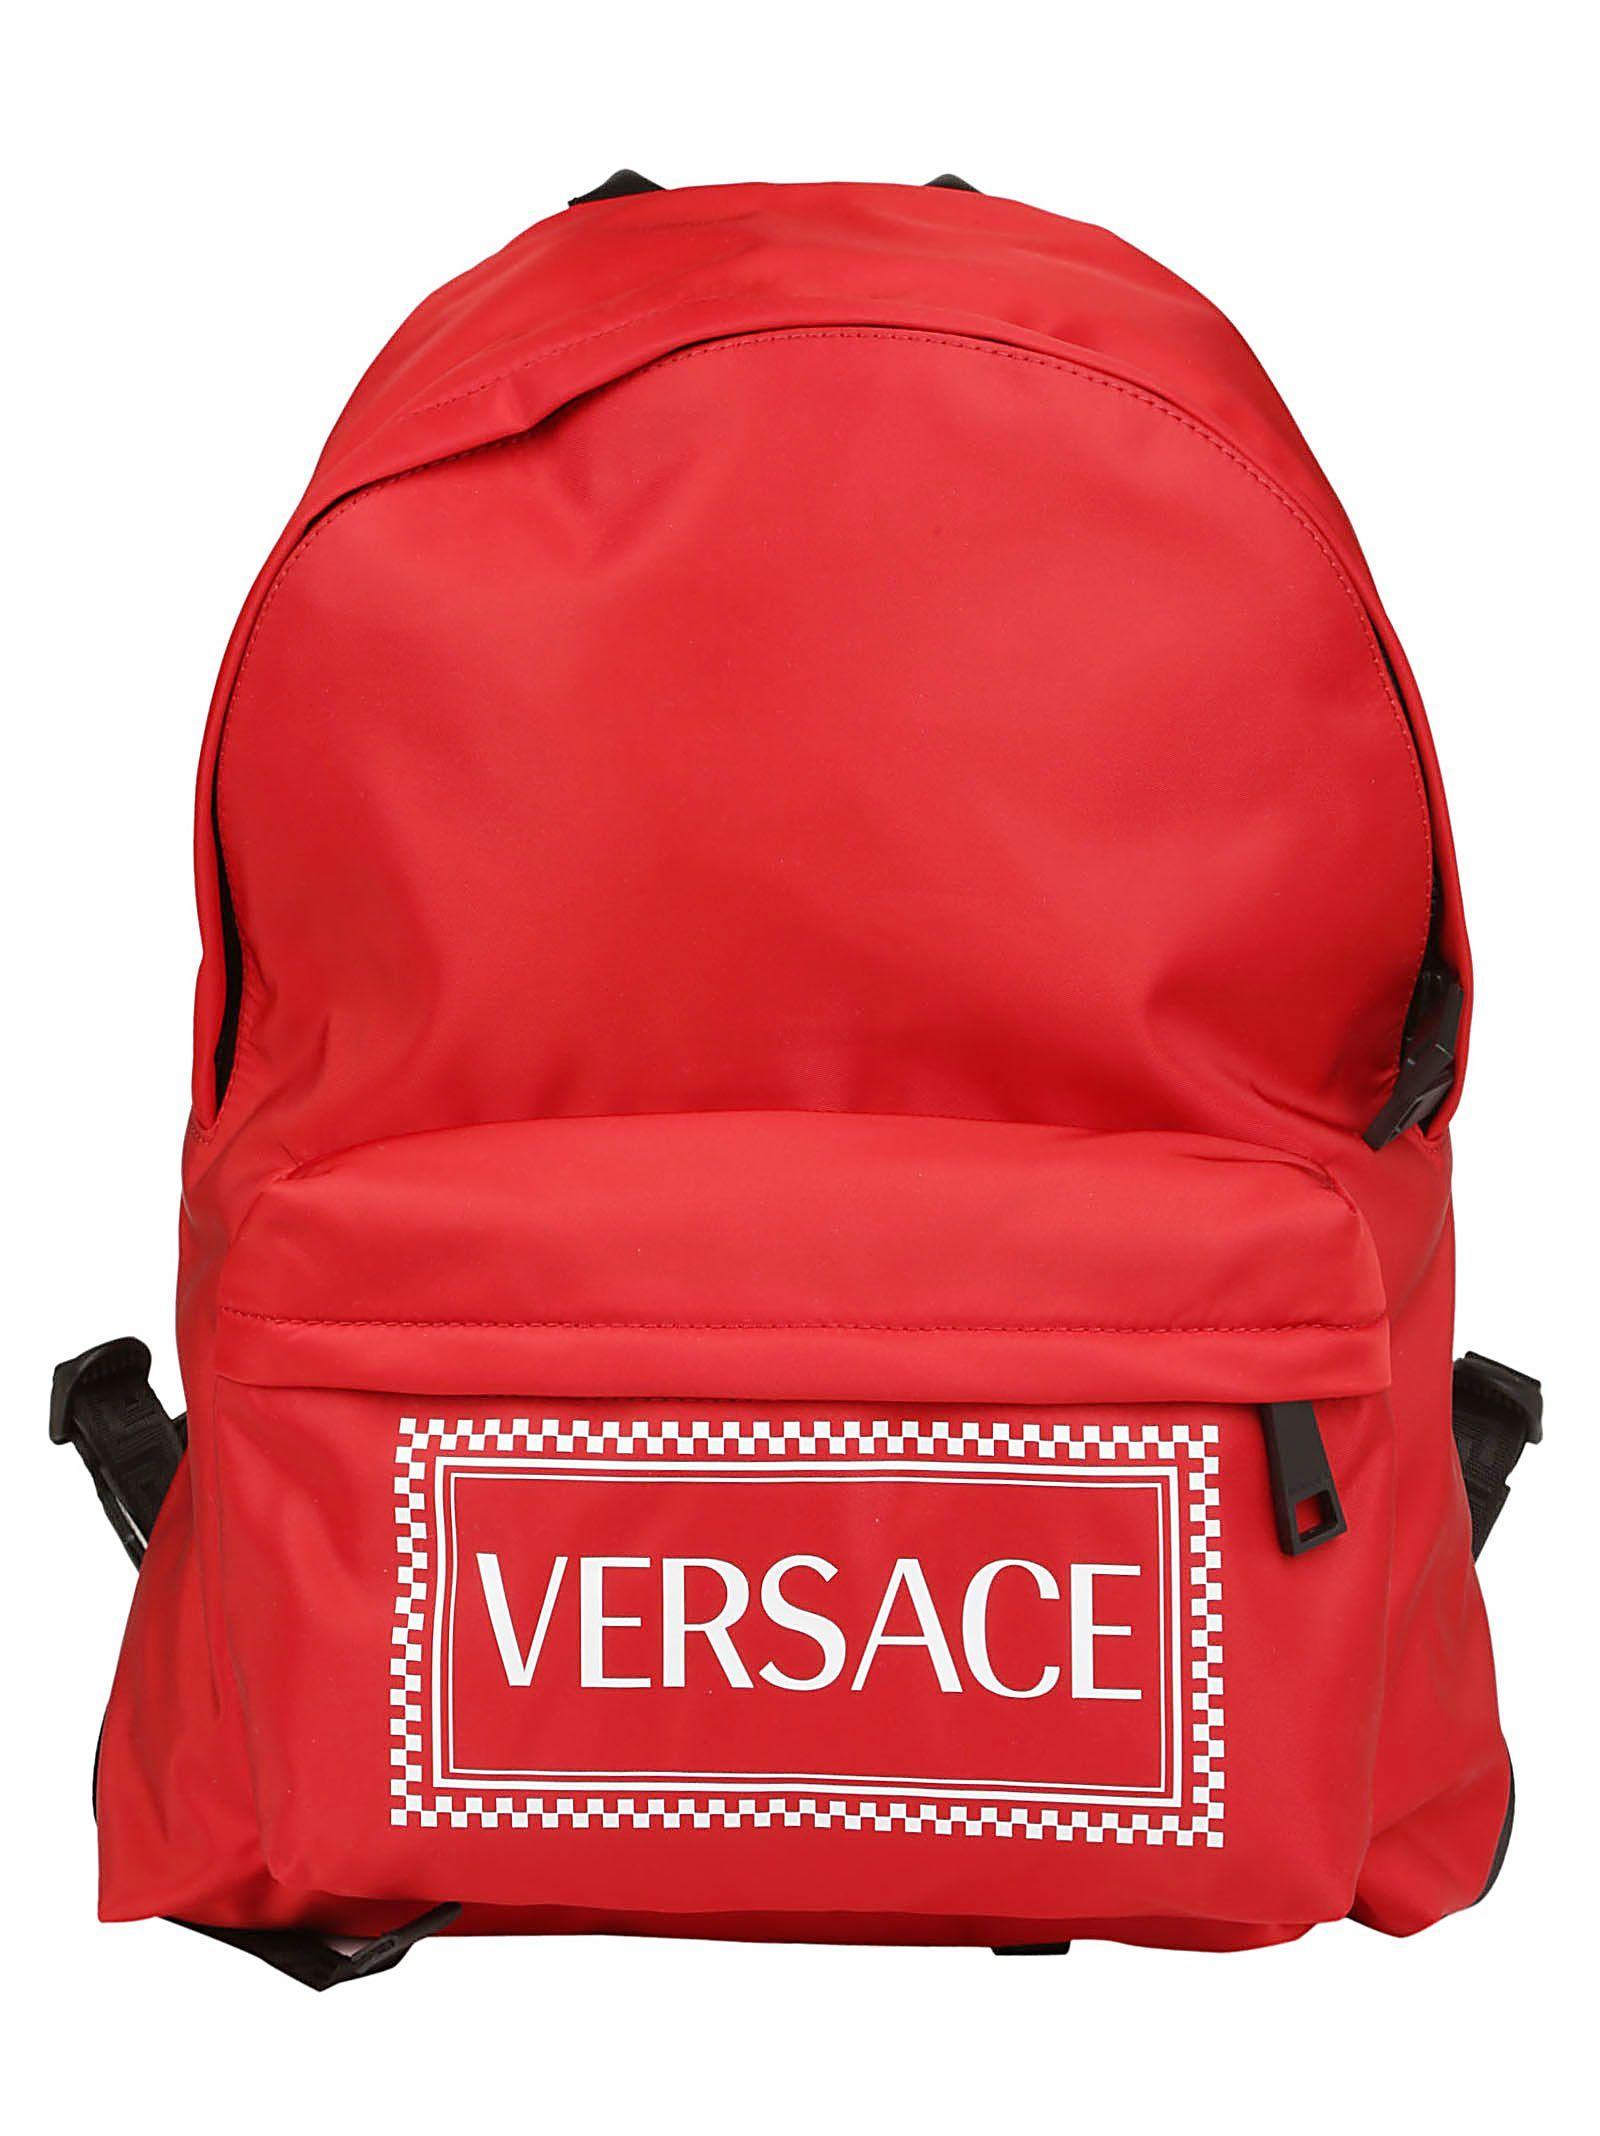 ce70da7a4b VERSACE BACKPACK.  versace  bags  leather  nylon  backpacks ...